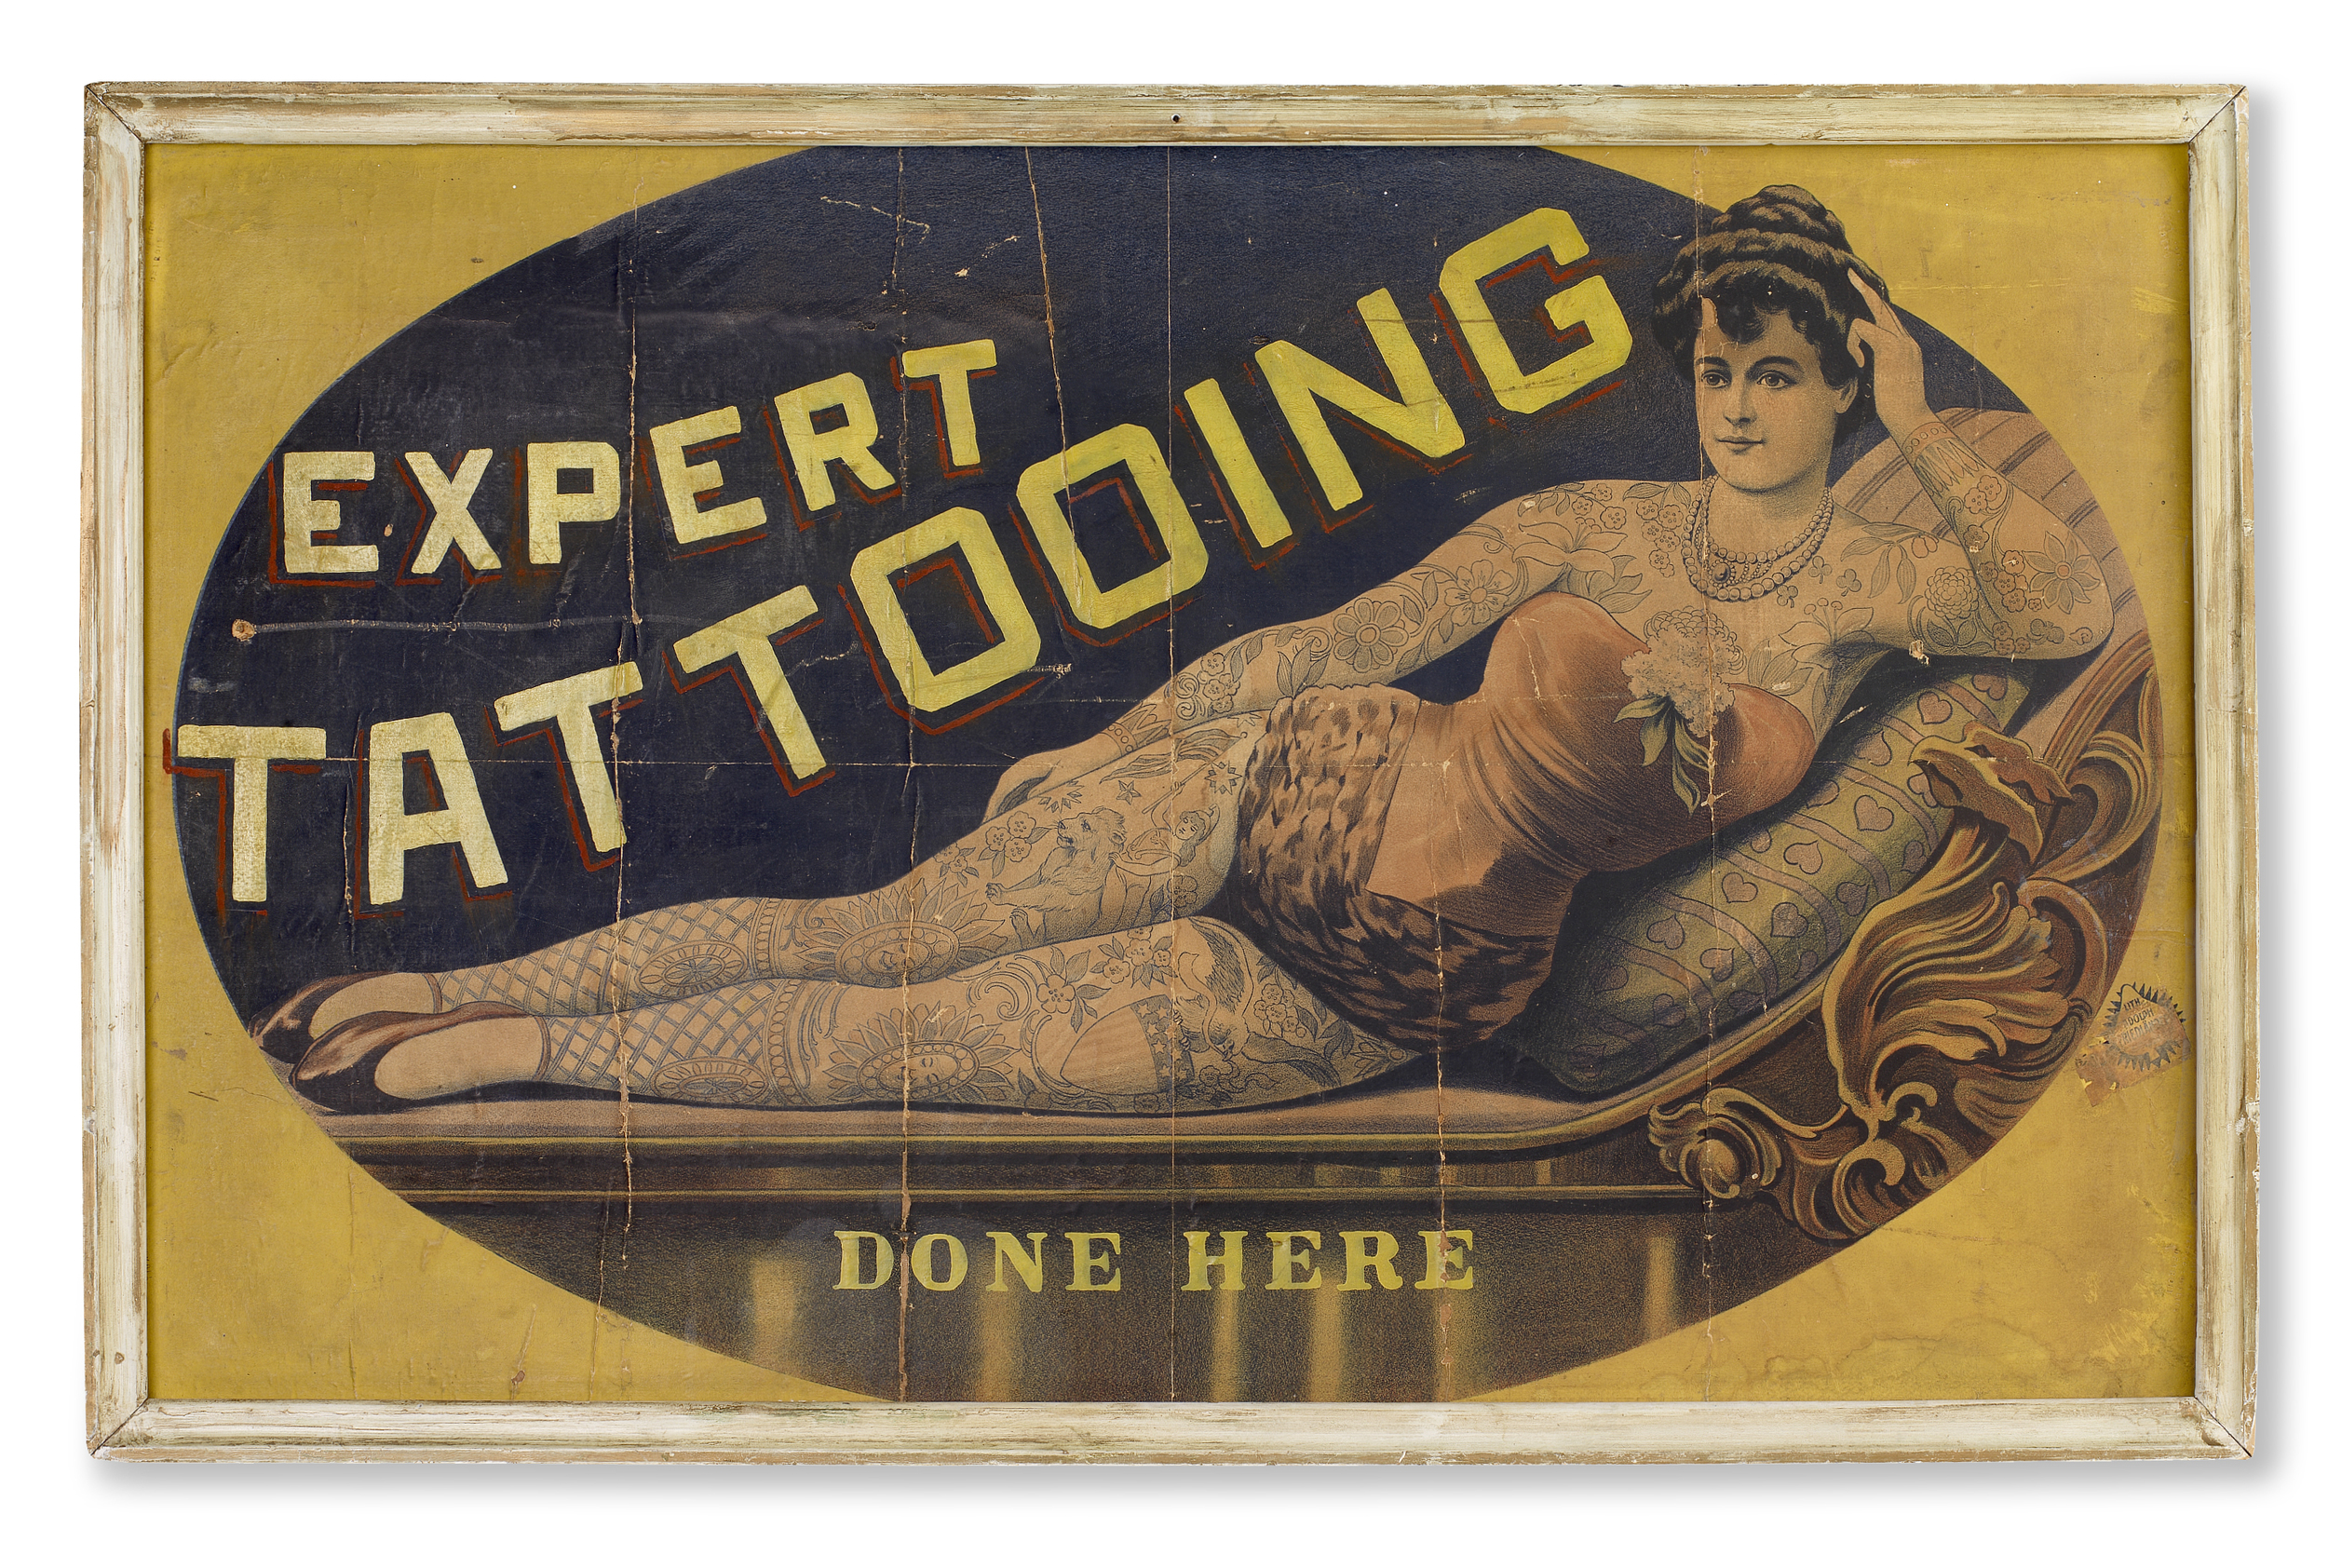 American turn of the Centurytattoo parlour poster of a classically posedreclining painted lady. Pop artists such as Peter Blake and Larry Riversreferencedthis kind of authentic Americana.Inas-found condition, measuring96cm x 60cm.